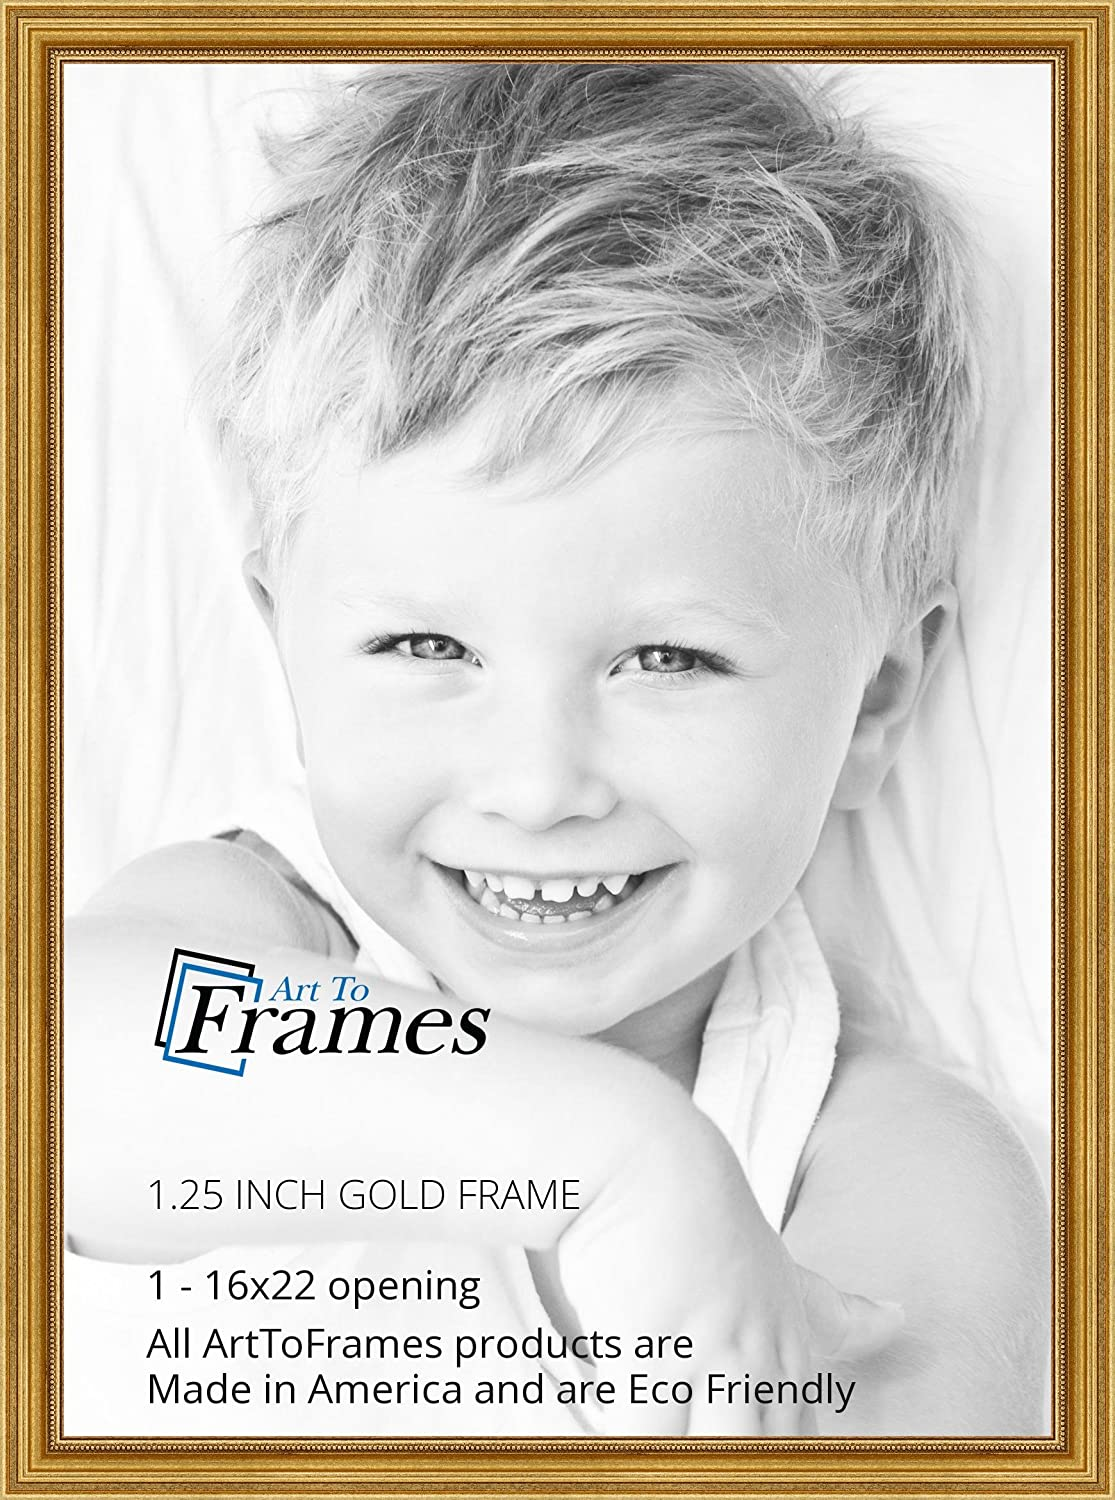 Amazon.com - ArtToFrames 16x22 inch Gold Foil on Pine Wood Picture ...